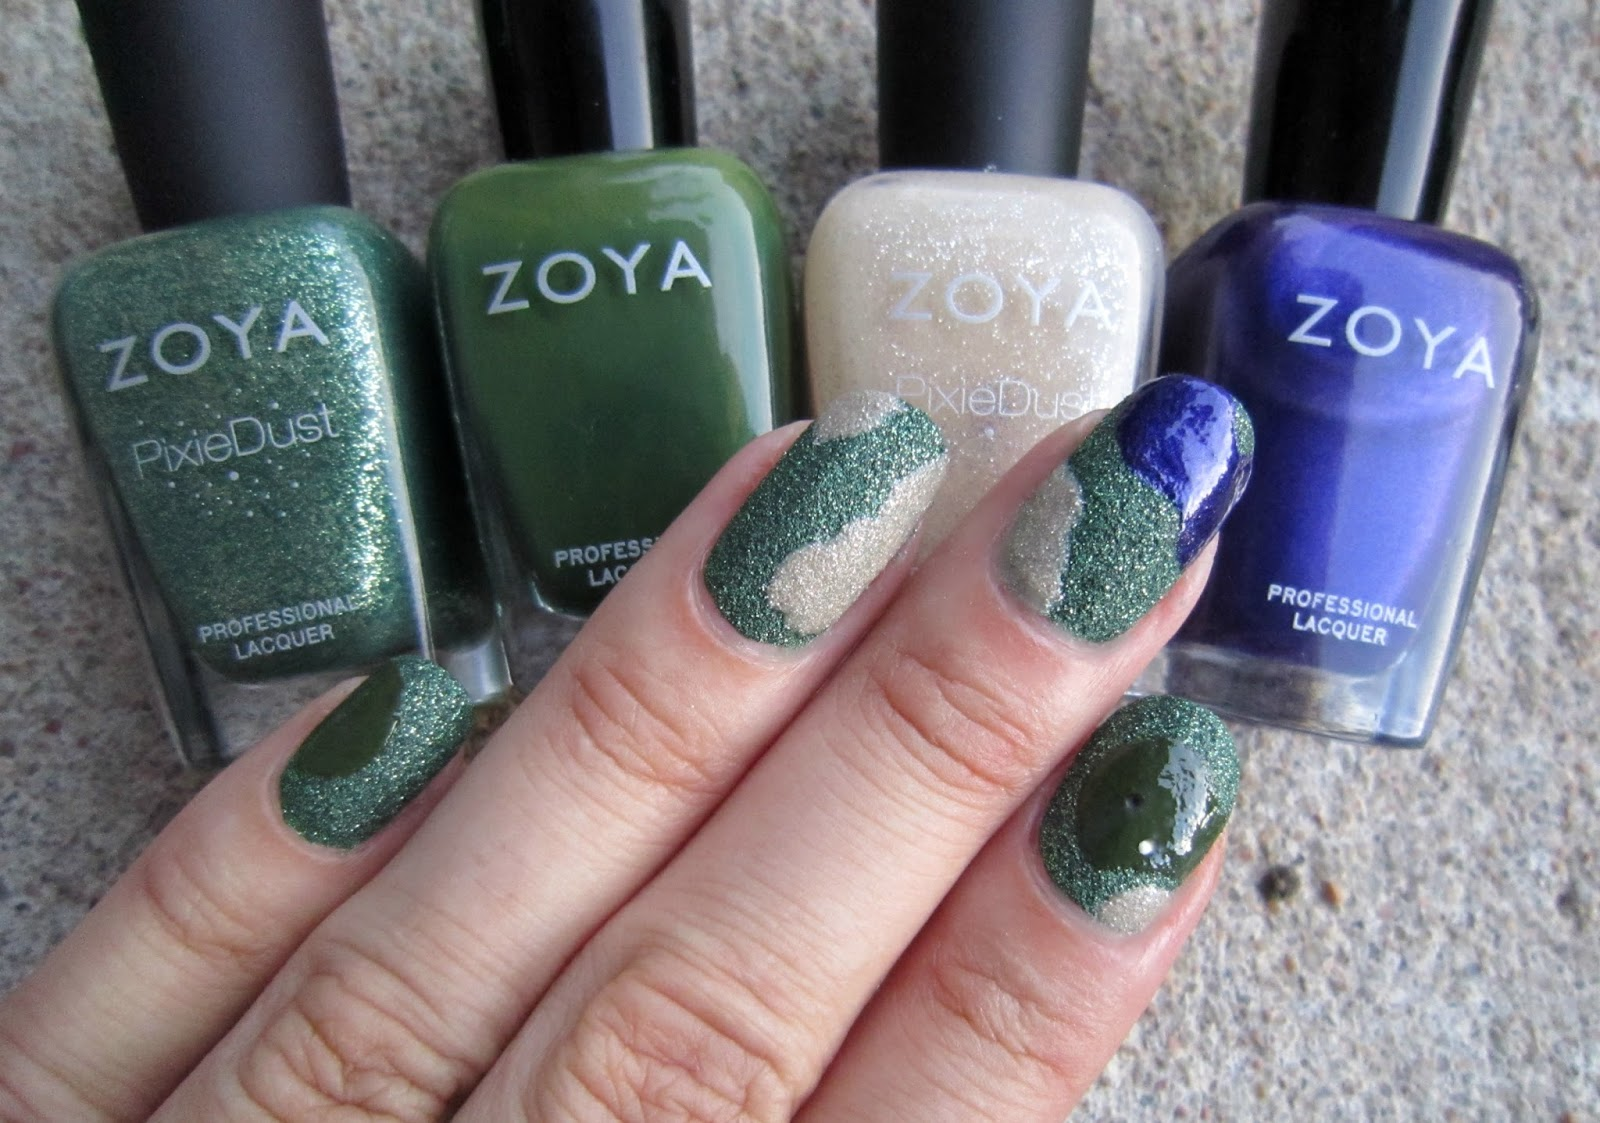 A Friend Of Mine Suggested That I Try Some Golf Course Nail Art When They Saw The Gorgeous Zoya Chita Ve Never Played Or Watched But Decided To